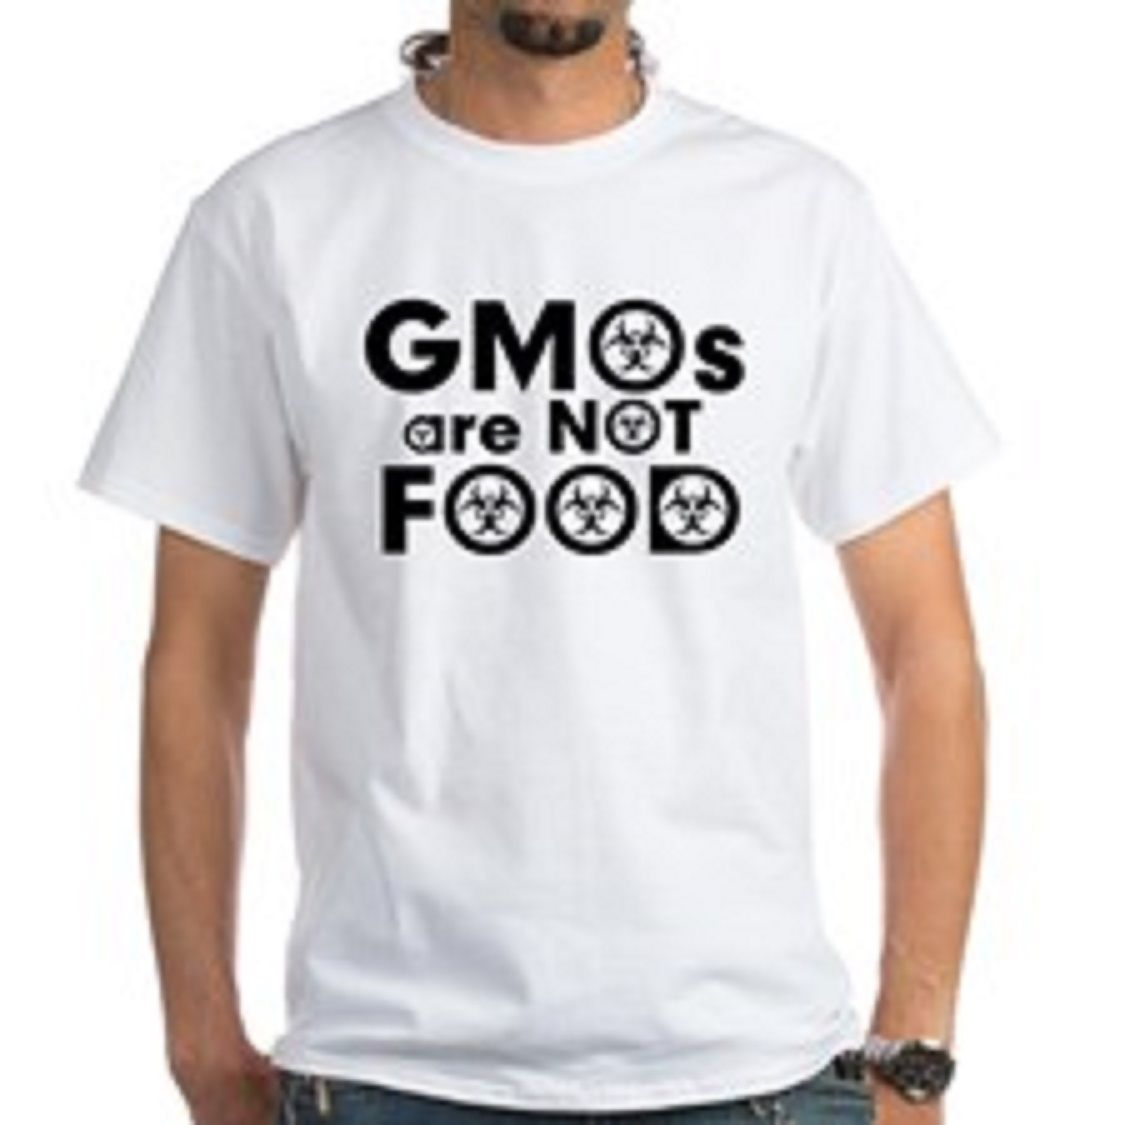 GMOs Are NOT Food T Shirt Anti GMO Monsanto Organic Vegan Vegetarian Activist T-Shirt for Man Hipster O-Neck Causal Cool Tops